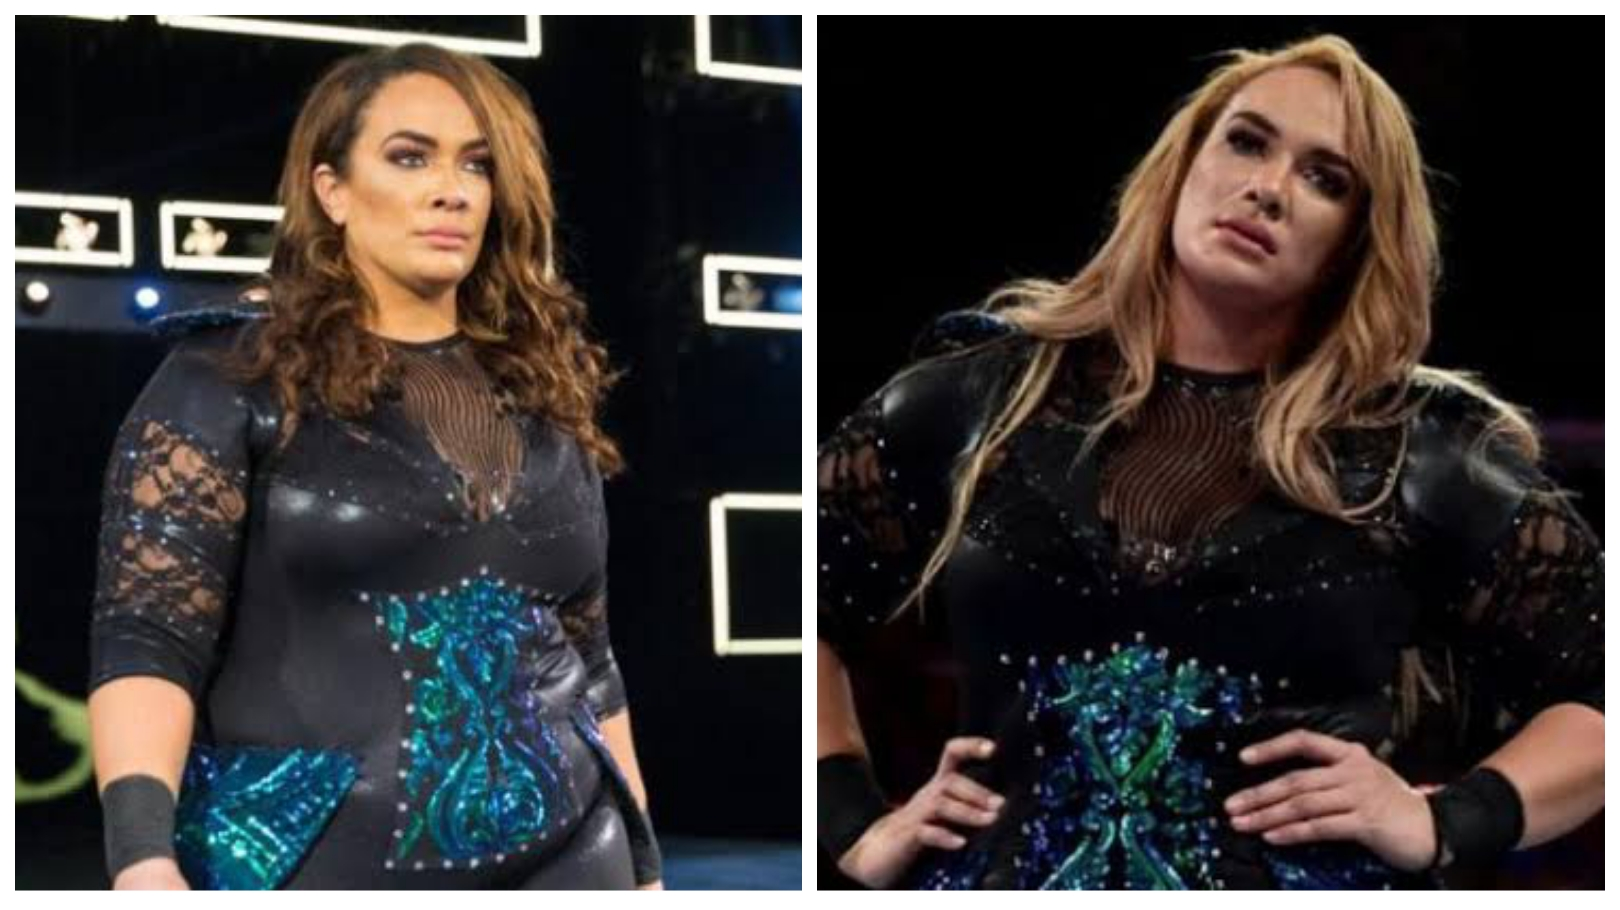 Nia Jax calls out WWE for facetuning her images for promotion - THE SPORTS ROOM